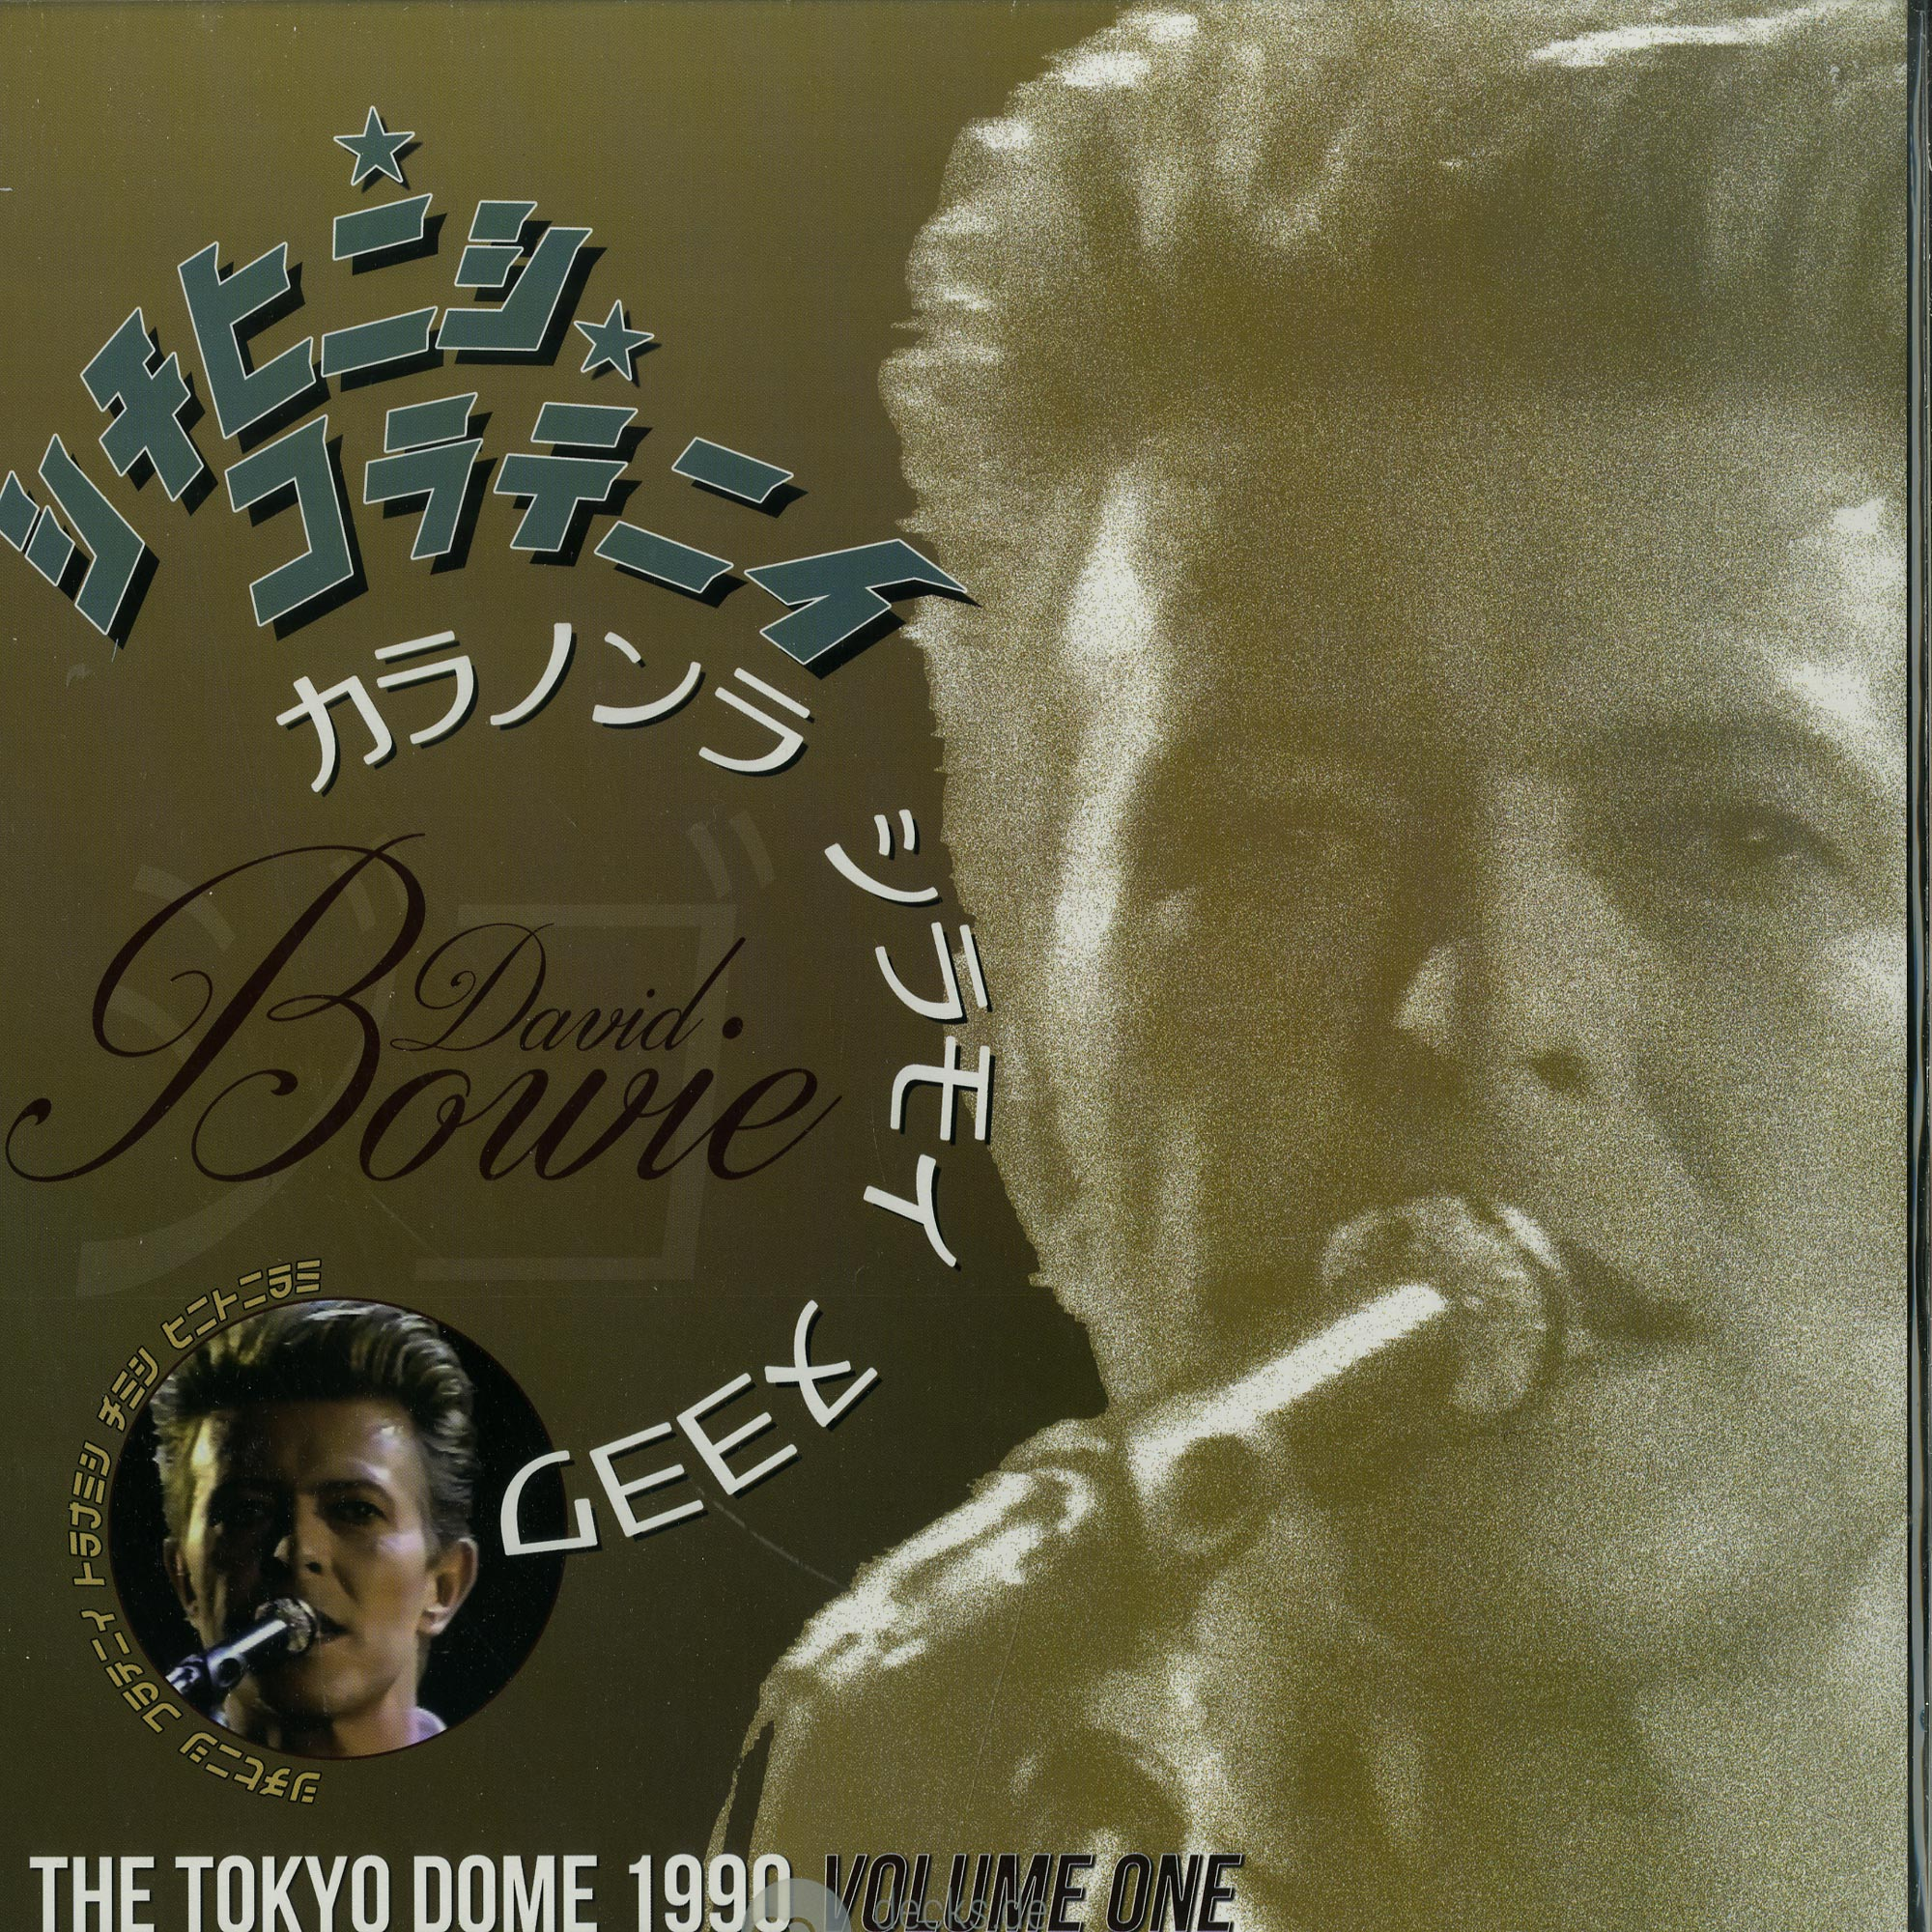 David Bowie - THE TOKYO DOME 1990 VOLUME ONE